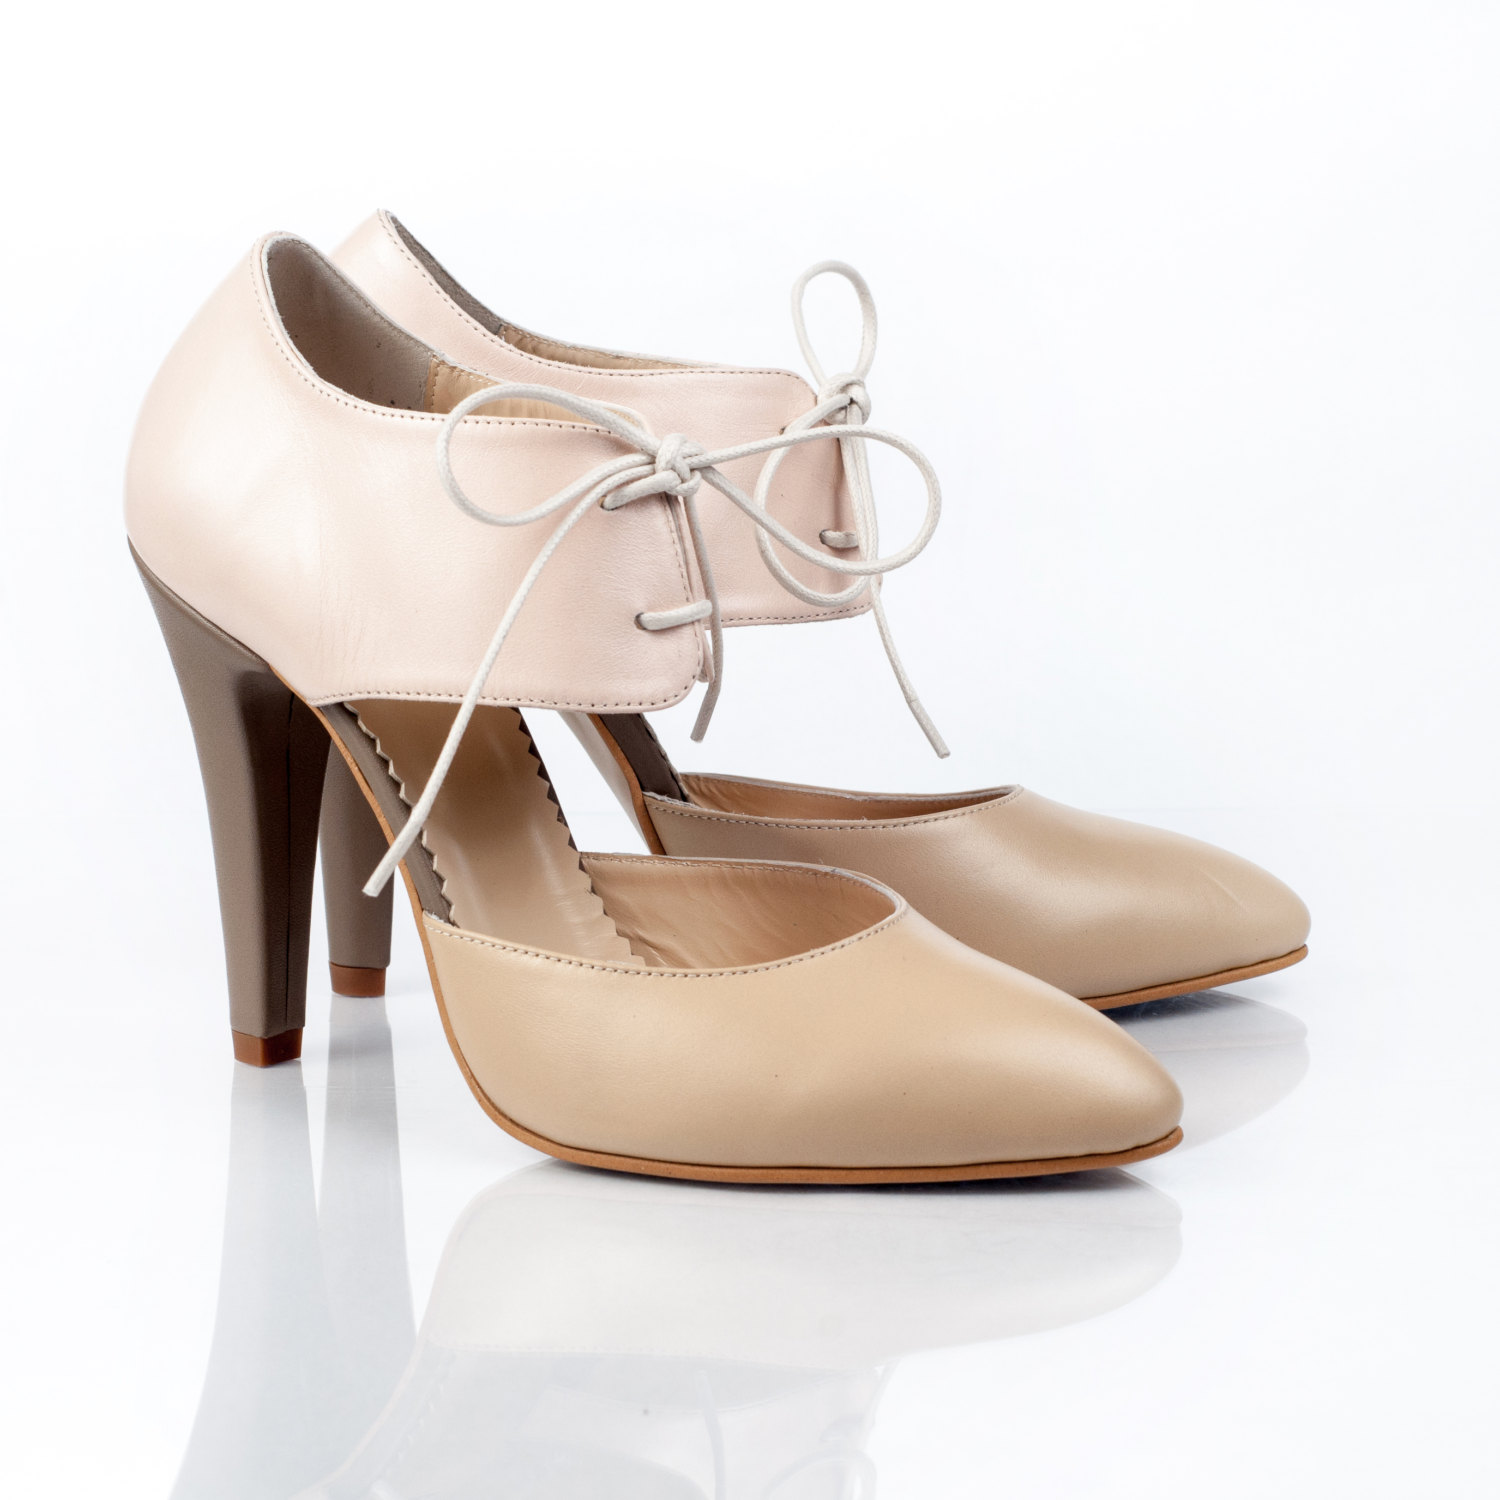 The Preppy Nude Toned Leather Pumps